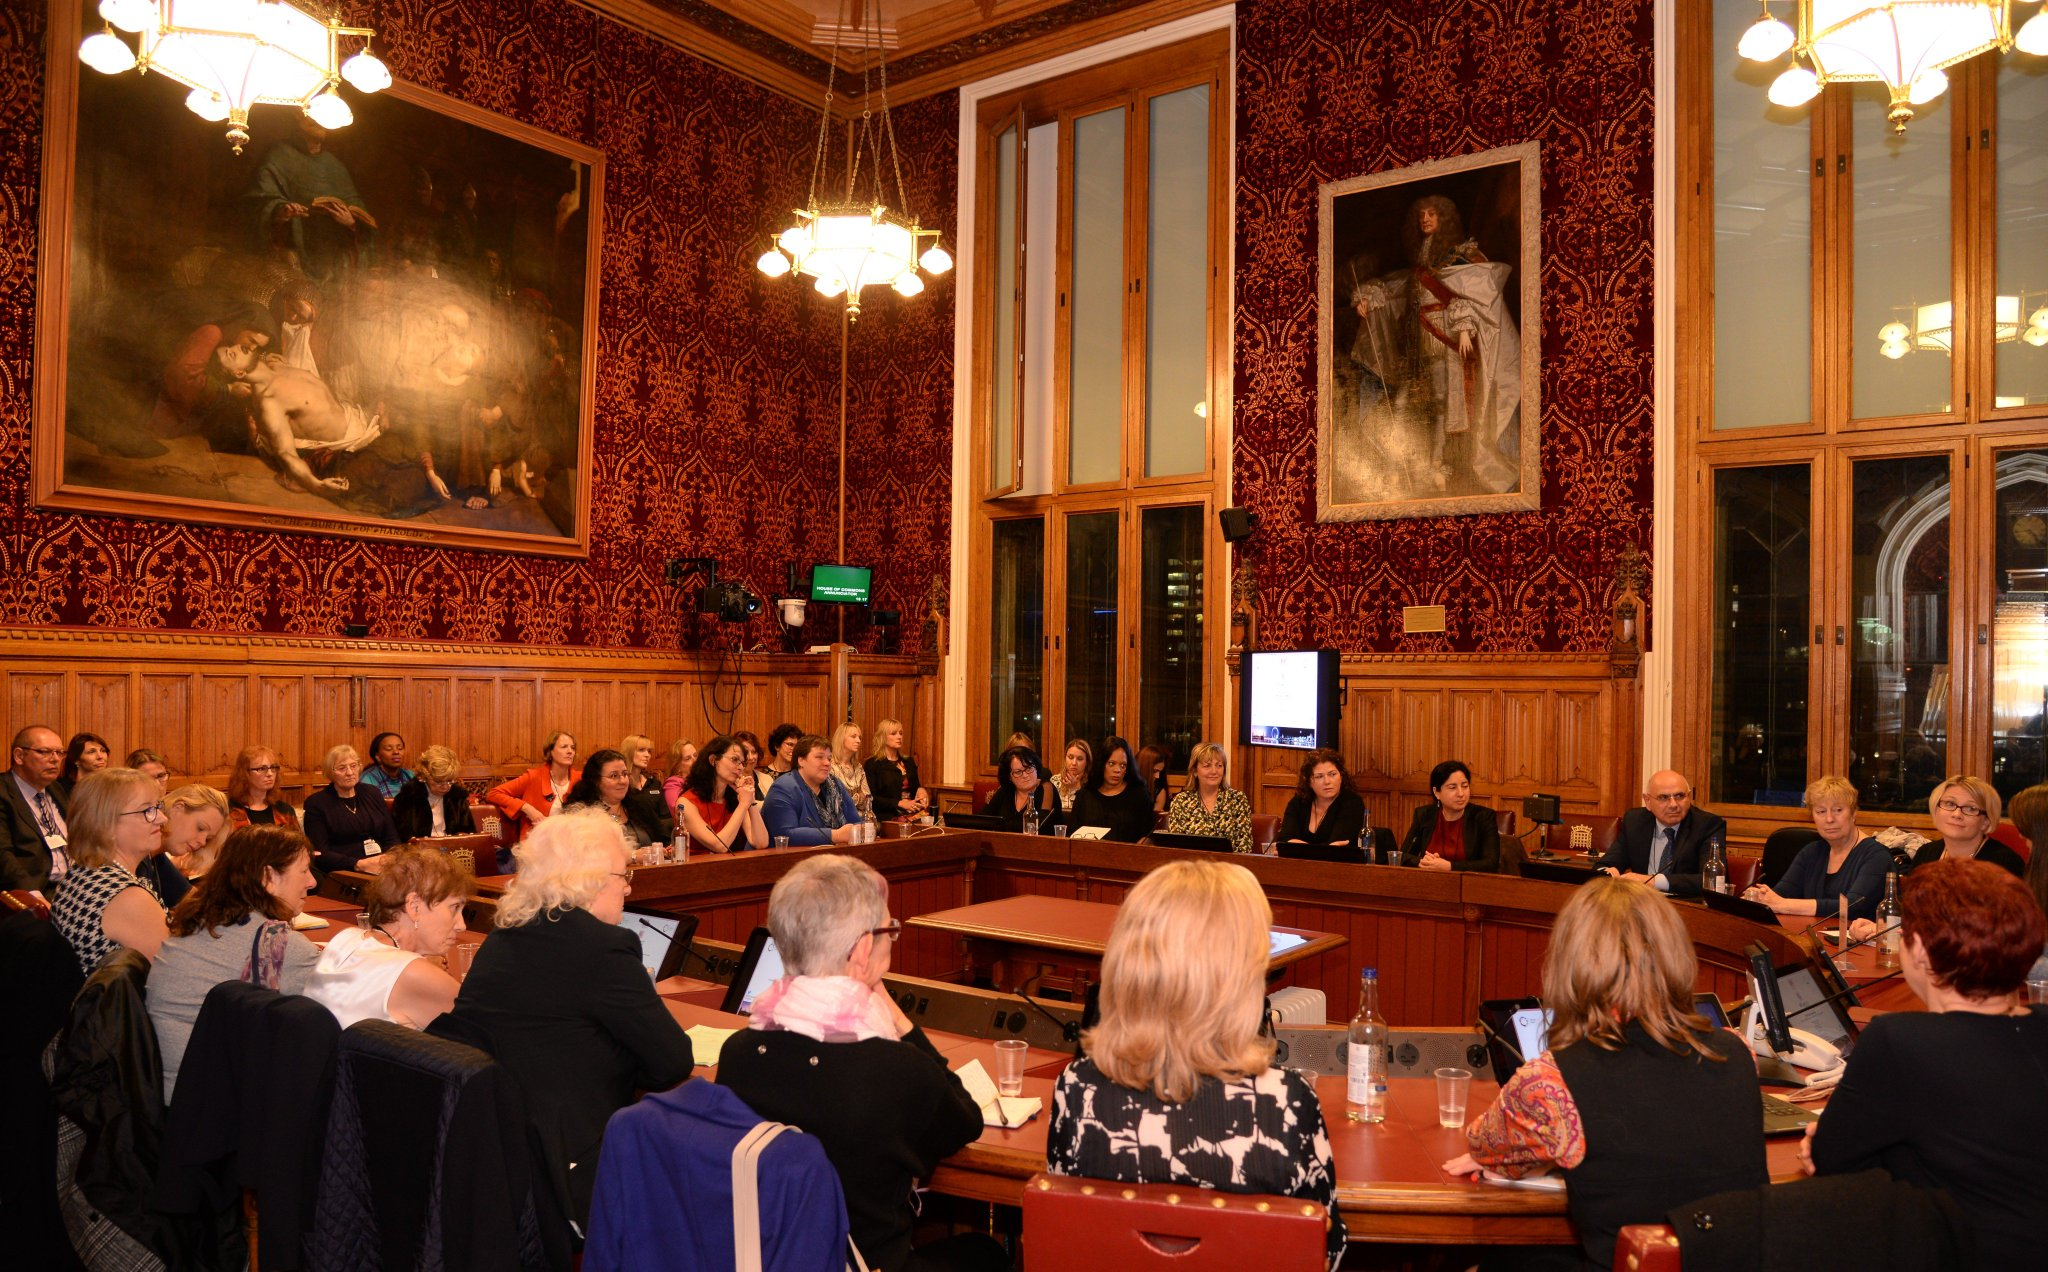 #GEW16 #Inspiring session with brilliant delegates! Thanks to all who contributed #ScaleUp roundtable @UKHouseofLords @EB4Women @GEWUK https://t.co/UF6EcqP8pQ